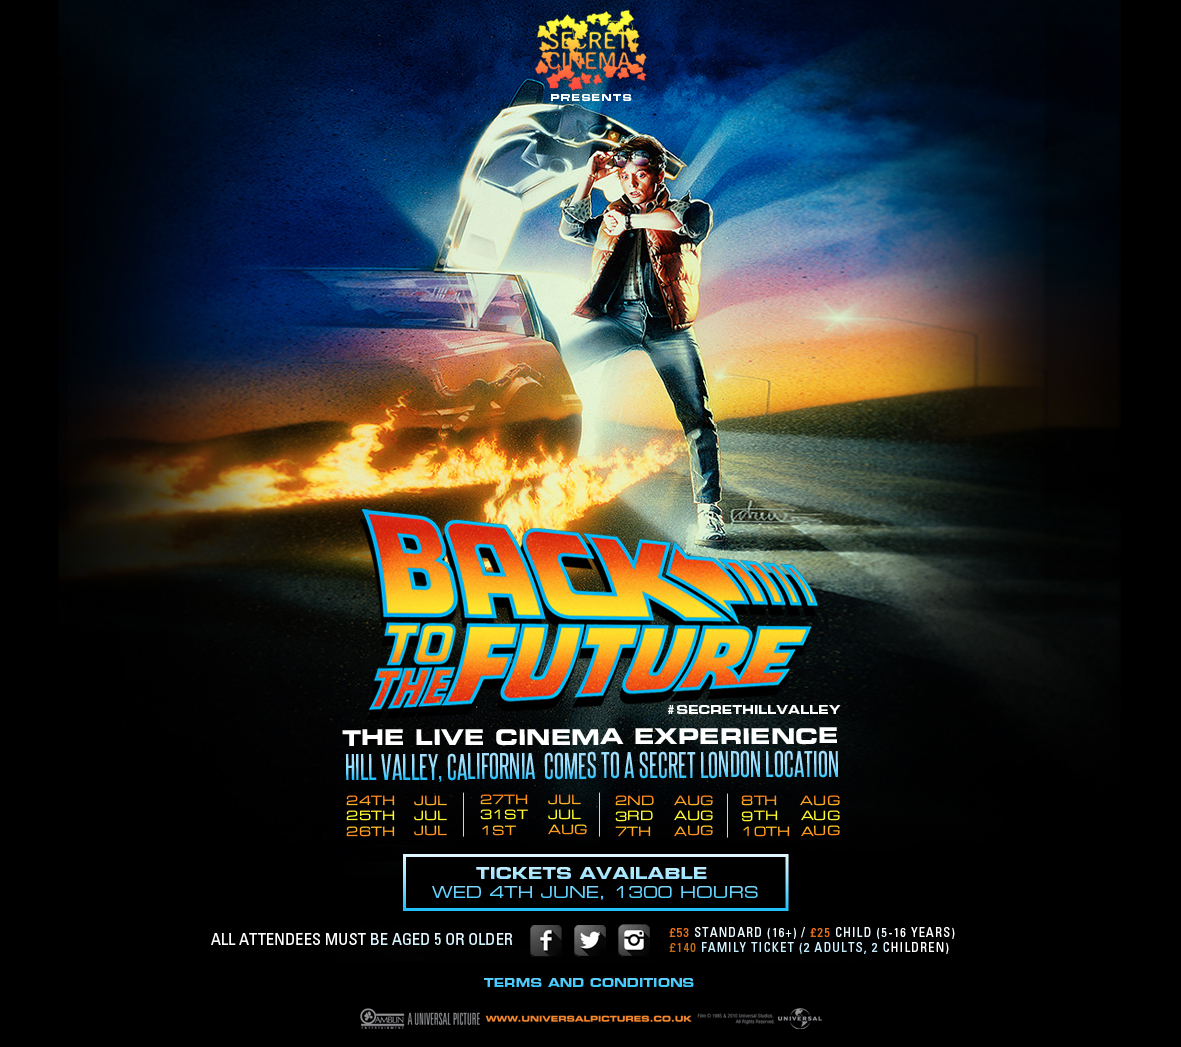 back to the future secret cinema tickets image